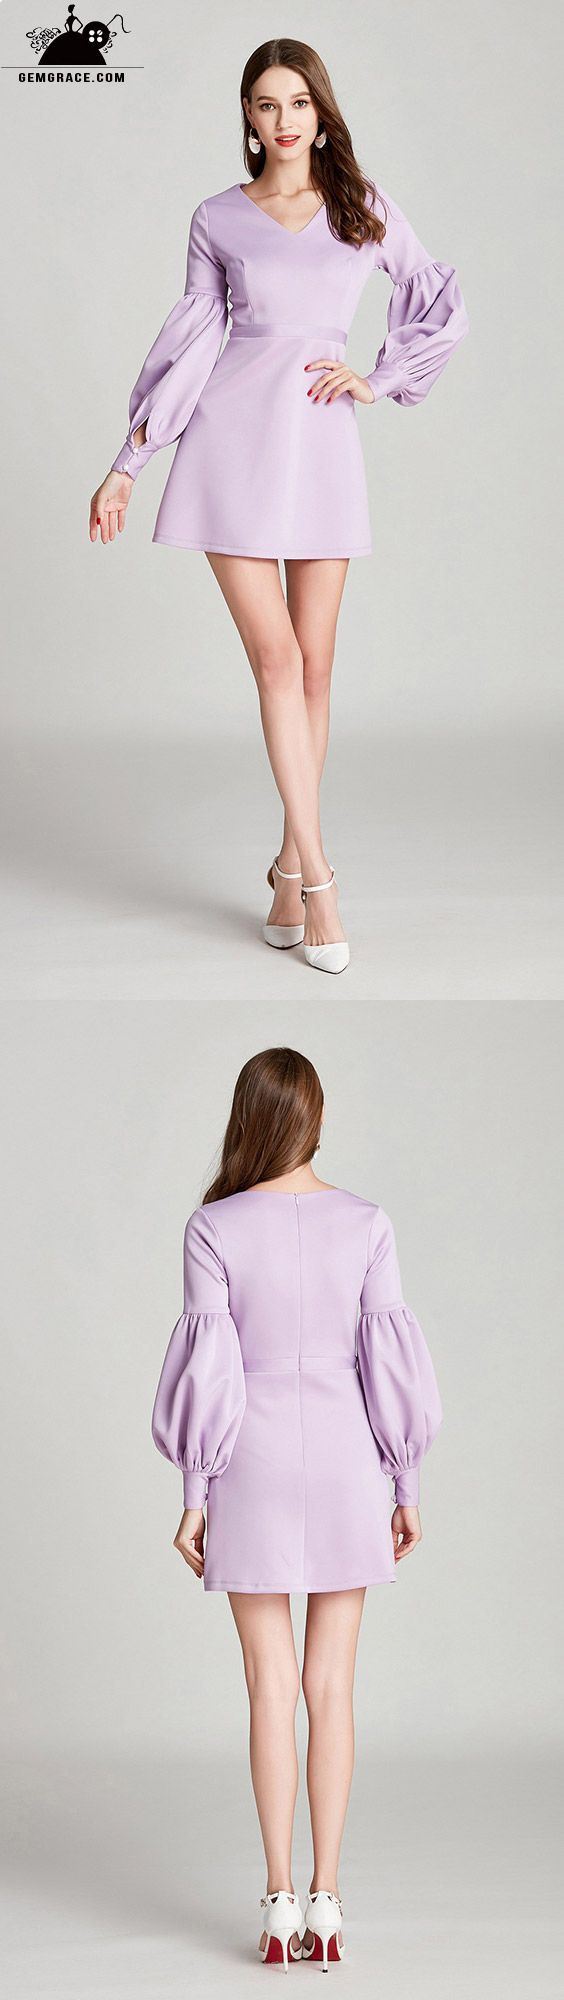 Simple lilac short cotton prom dress with long bubble sleeves dk